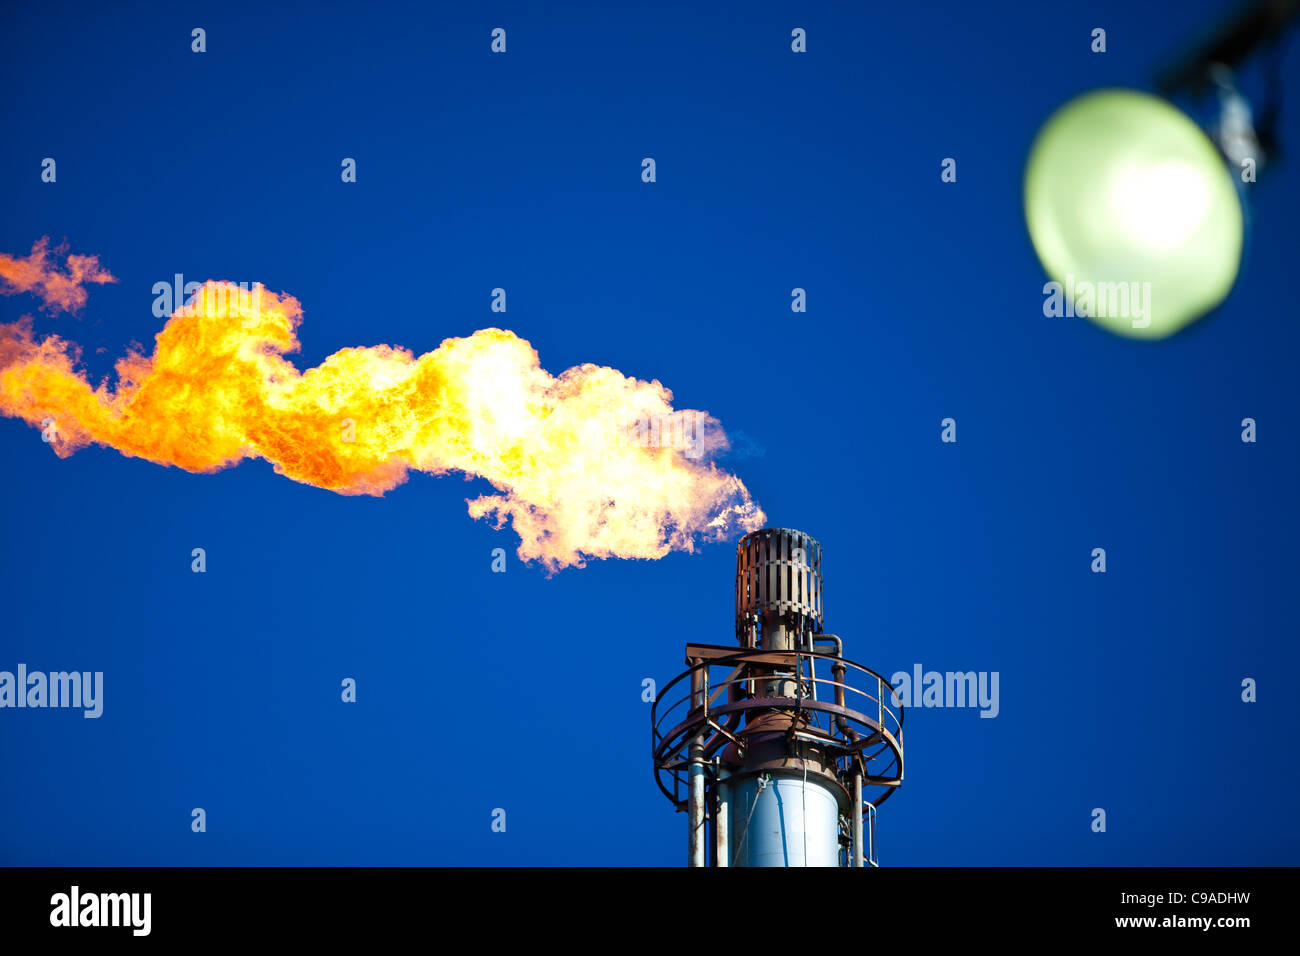 Flaring off gas at the Flotta oil terminal on the Island of Flotta in the Orkney's Scotland, UK. - Stock Image